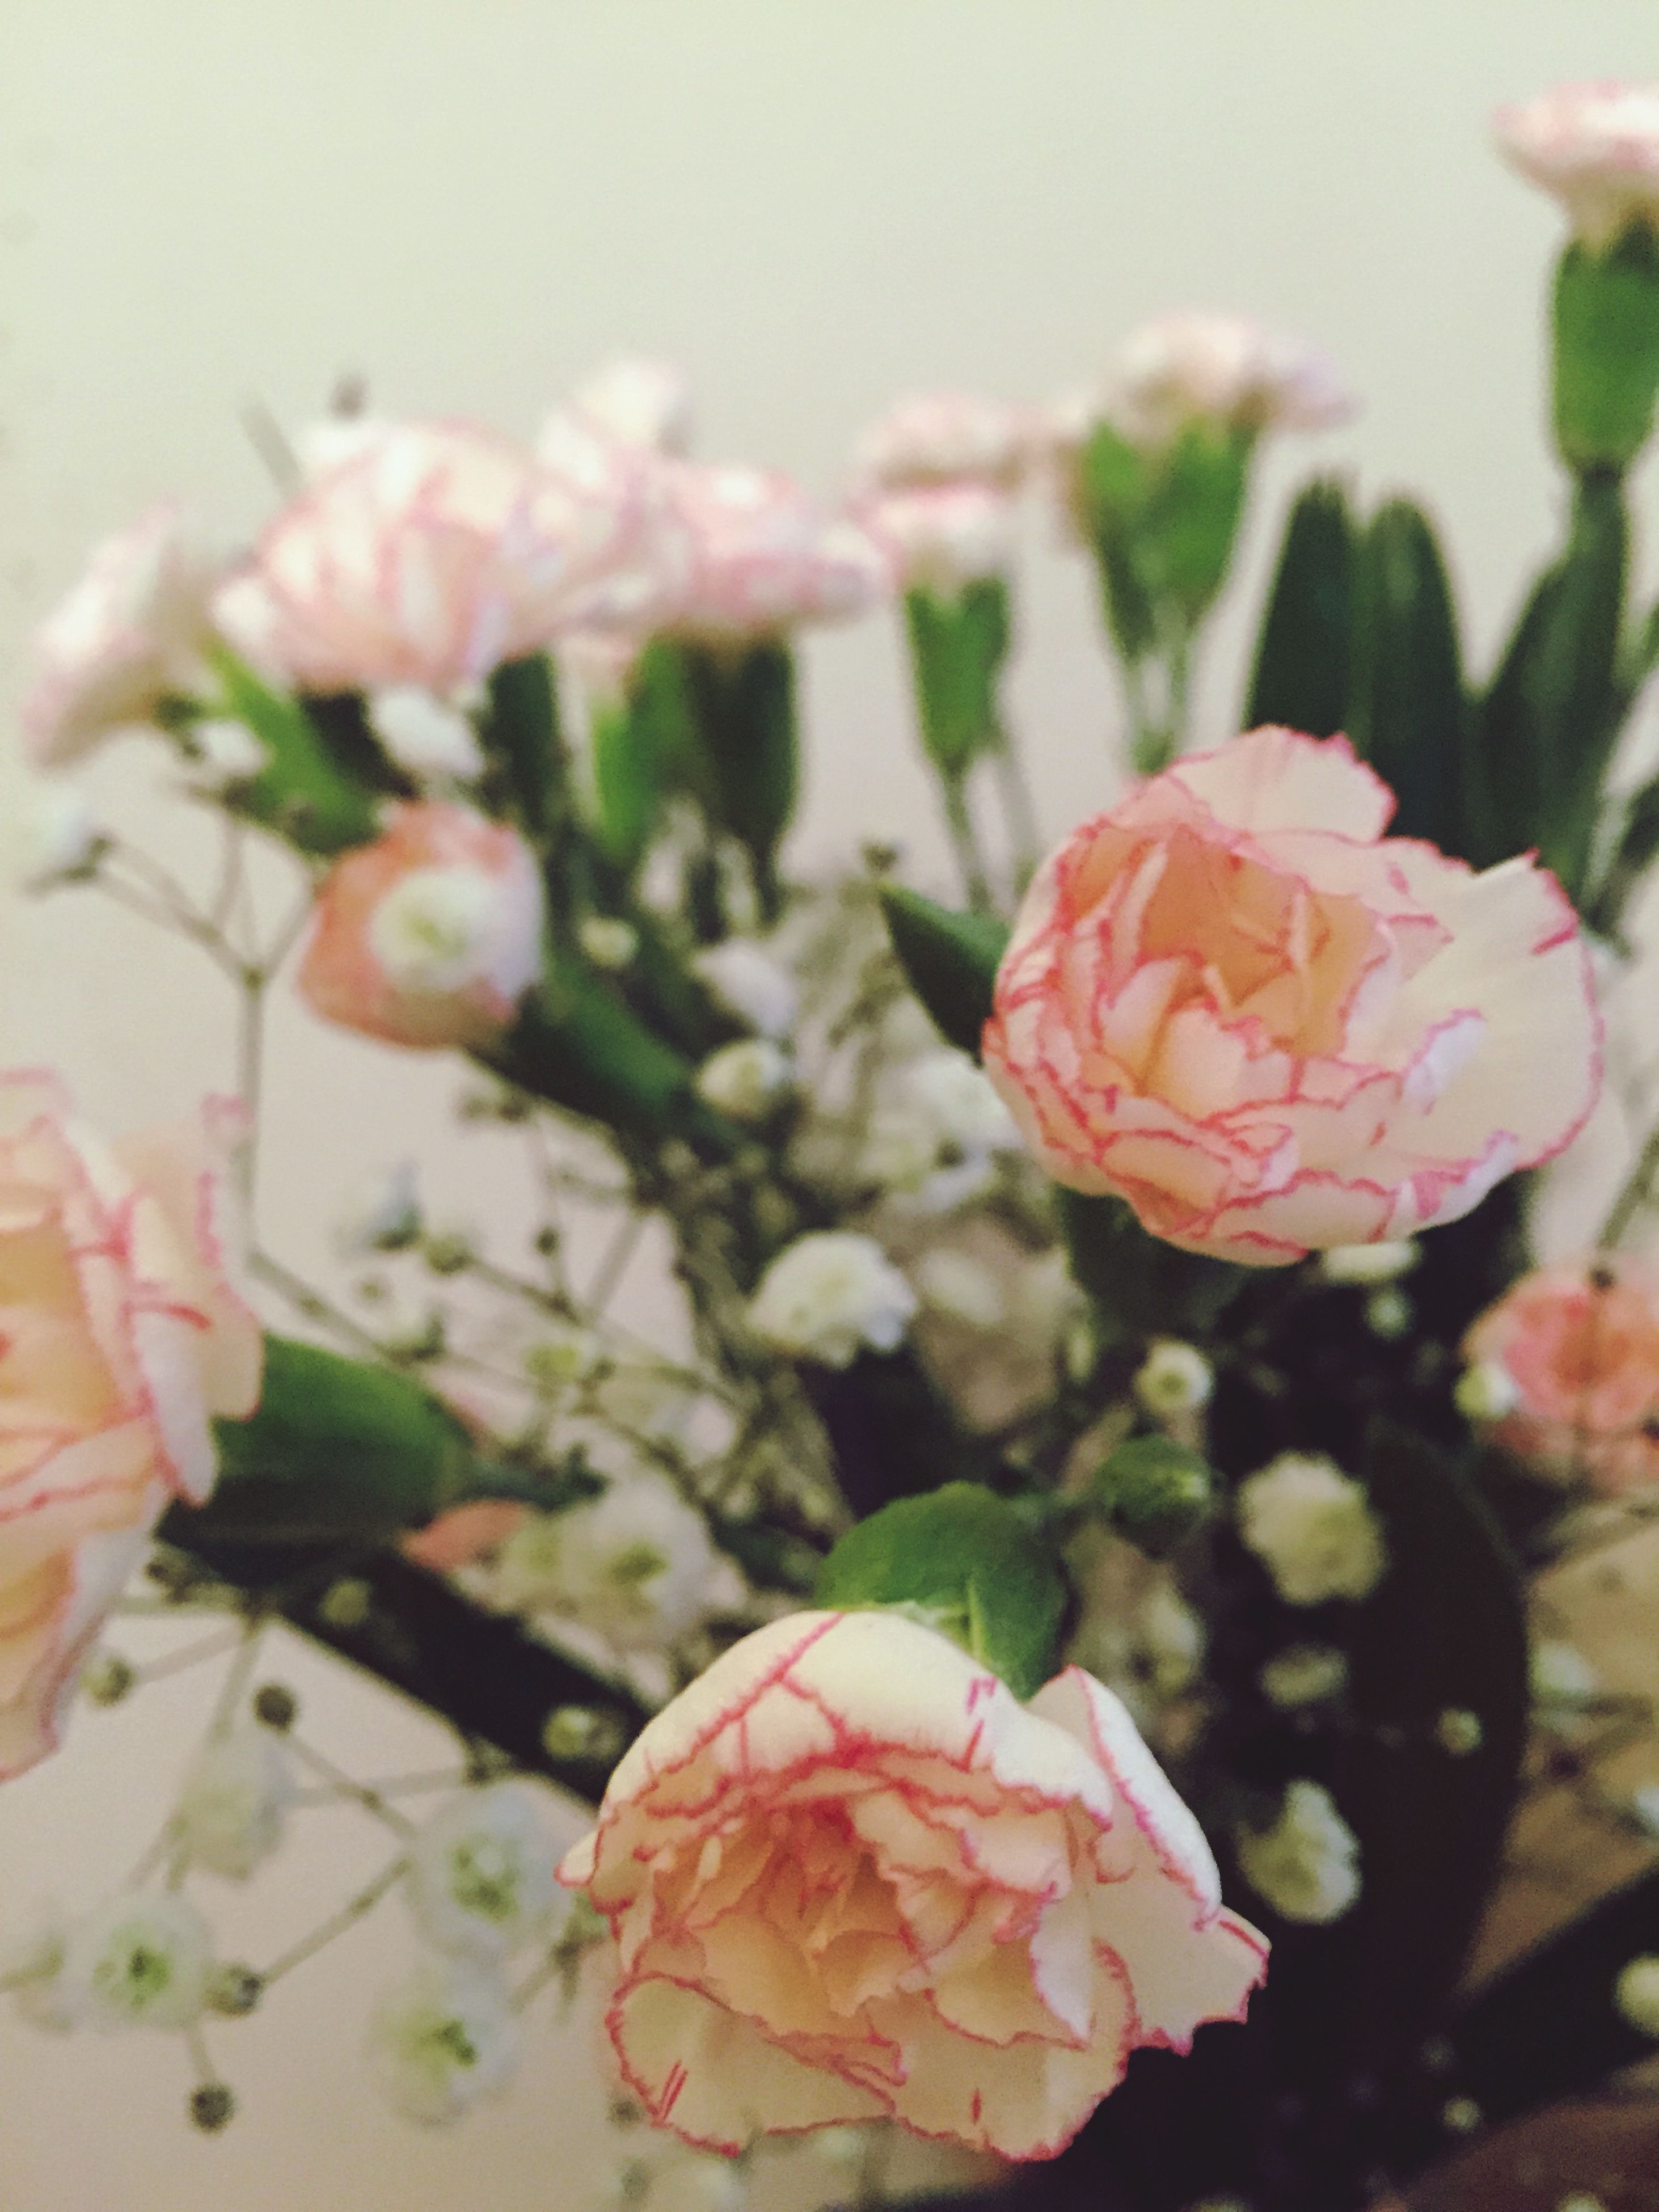 flower, freshness, rose - flower, close-up, indoors, focus on foreground, fragility, red, plant, petal, growth, beauty in nature, nature, pink color, flower head, no people, bud, decoration, leaf, day